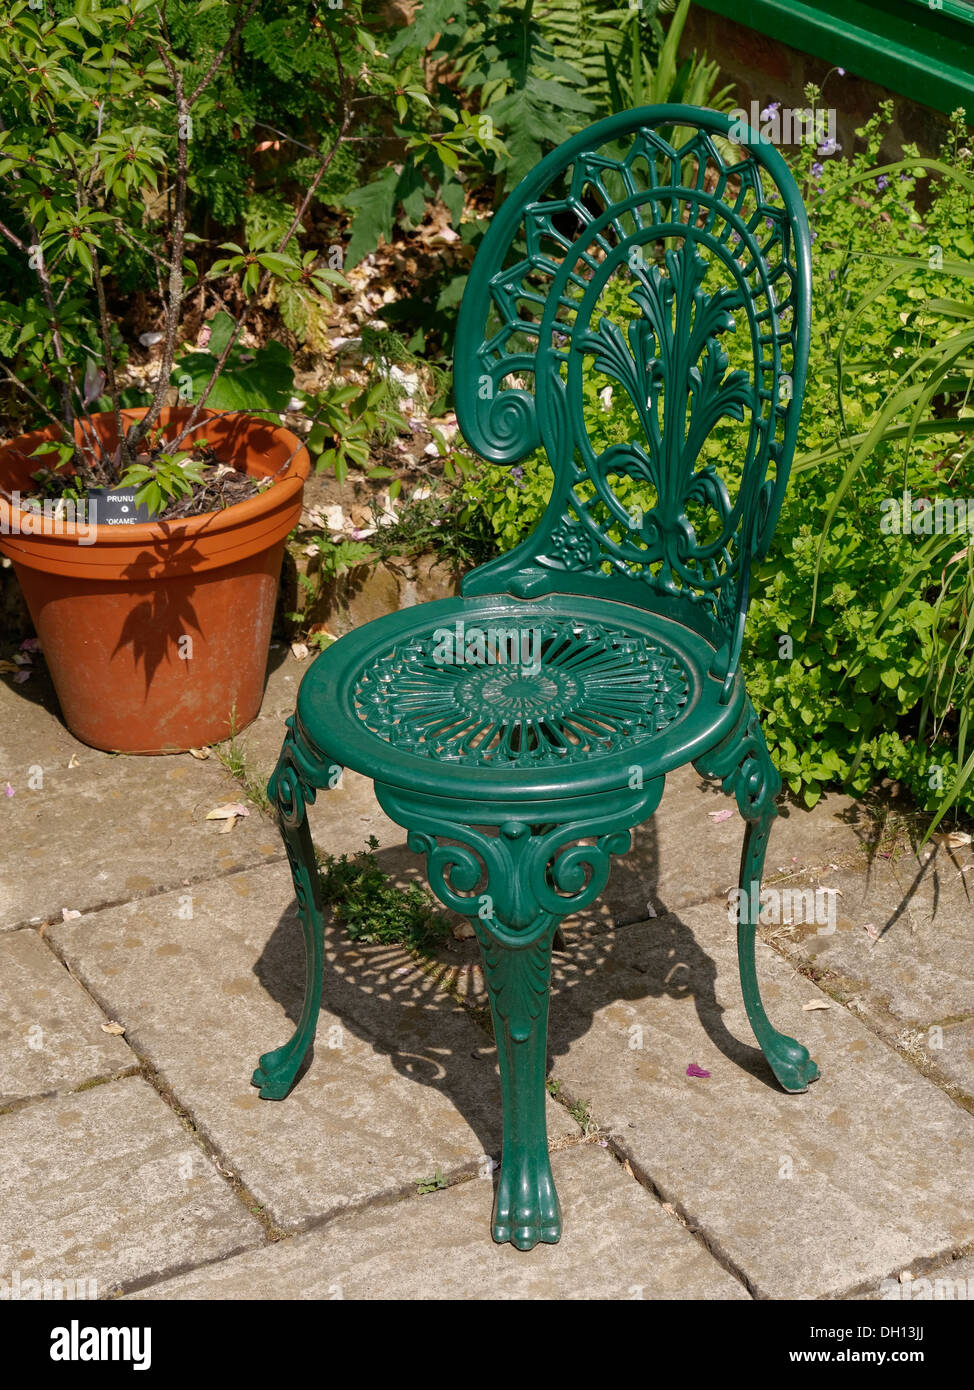 Green painted ornate cast metal garden chair on slabbed patio  Barnsdale  Gardens  Oakham  Rutland  England  UK. Green painted ornate cast metal garden chair on slabbed patio